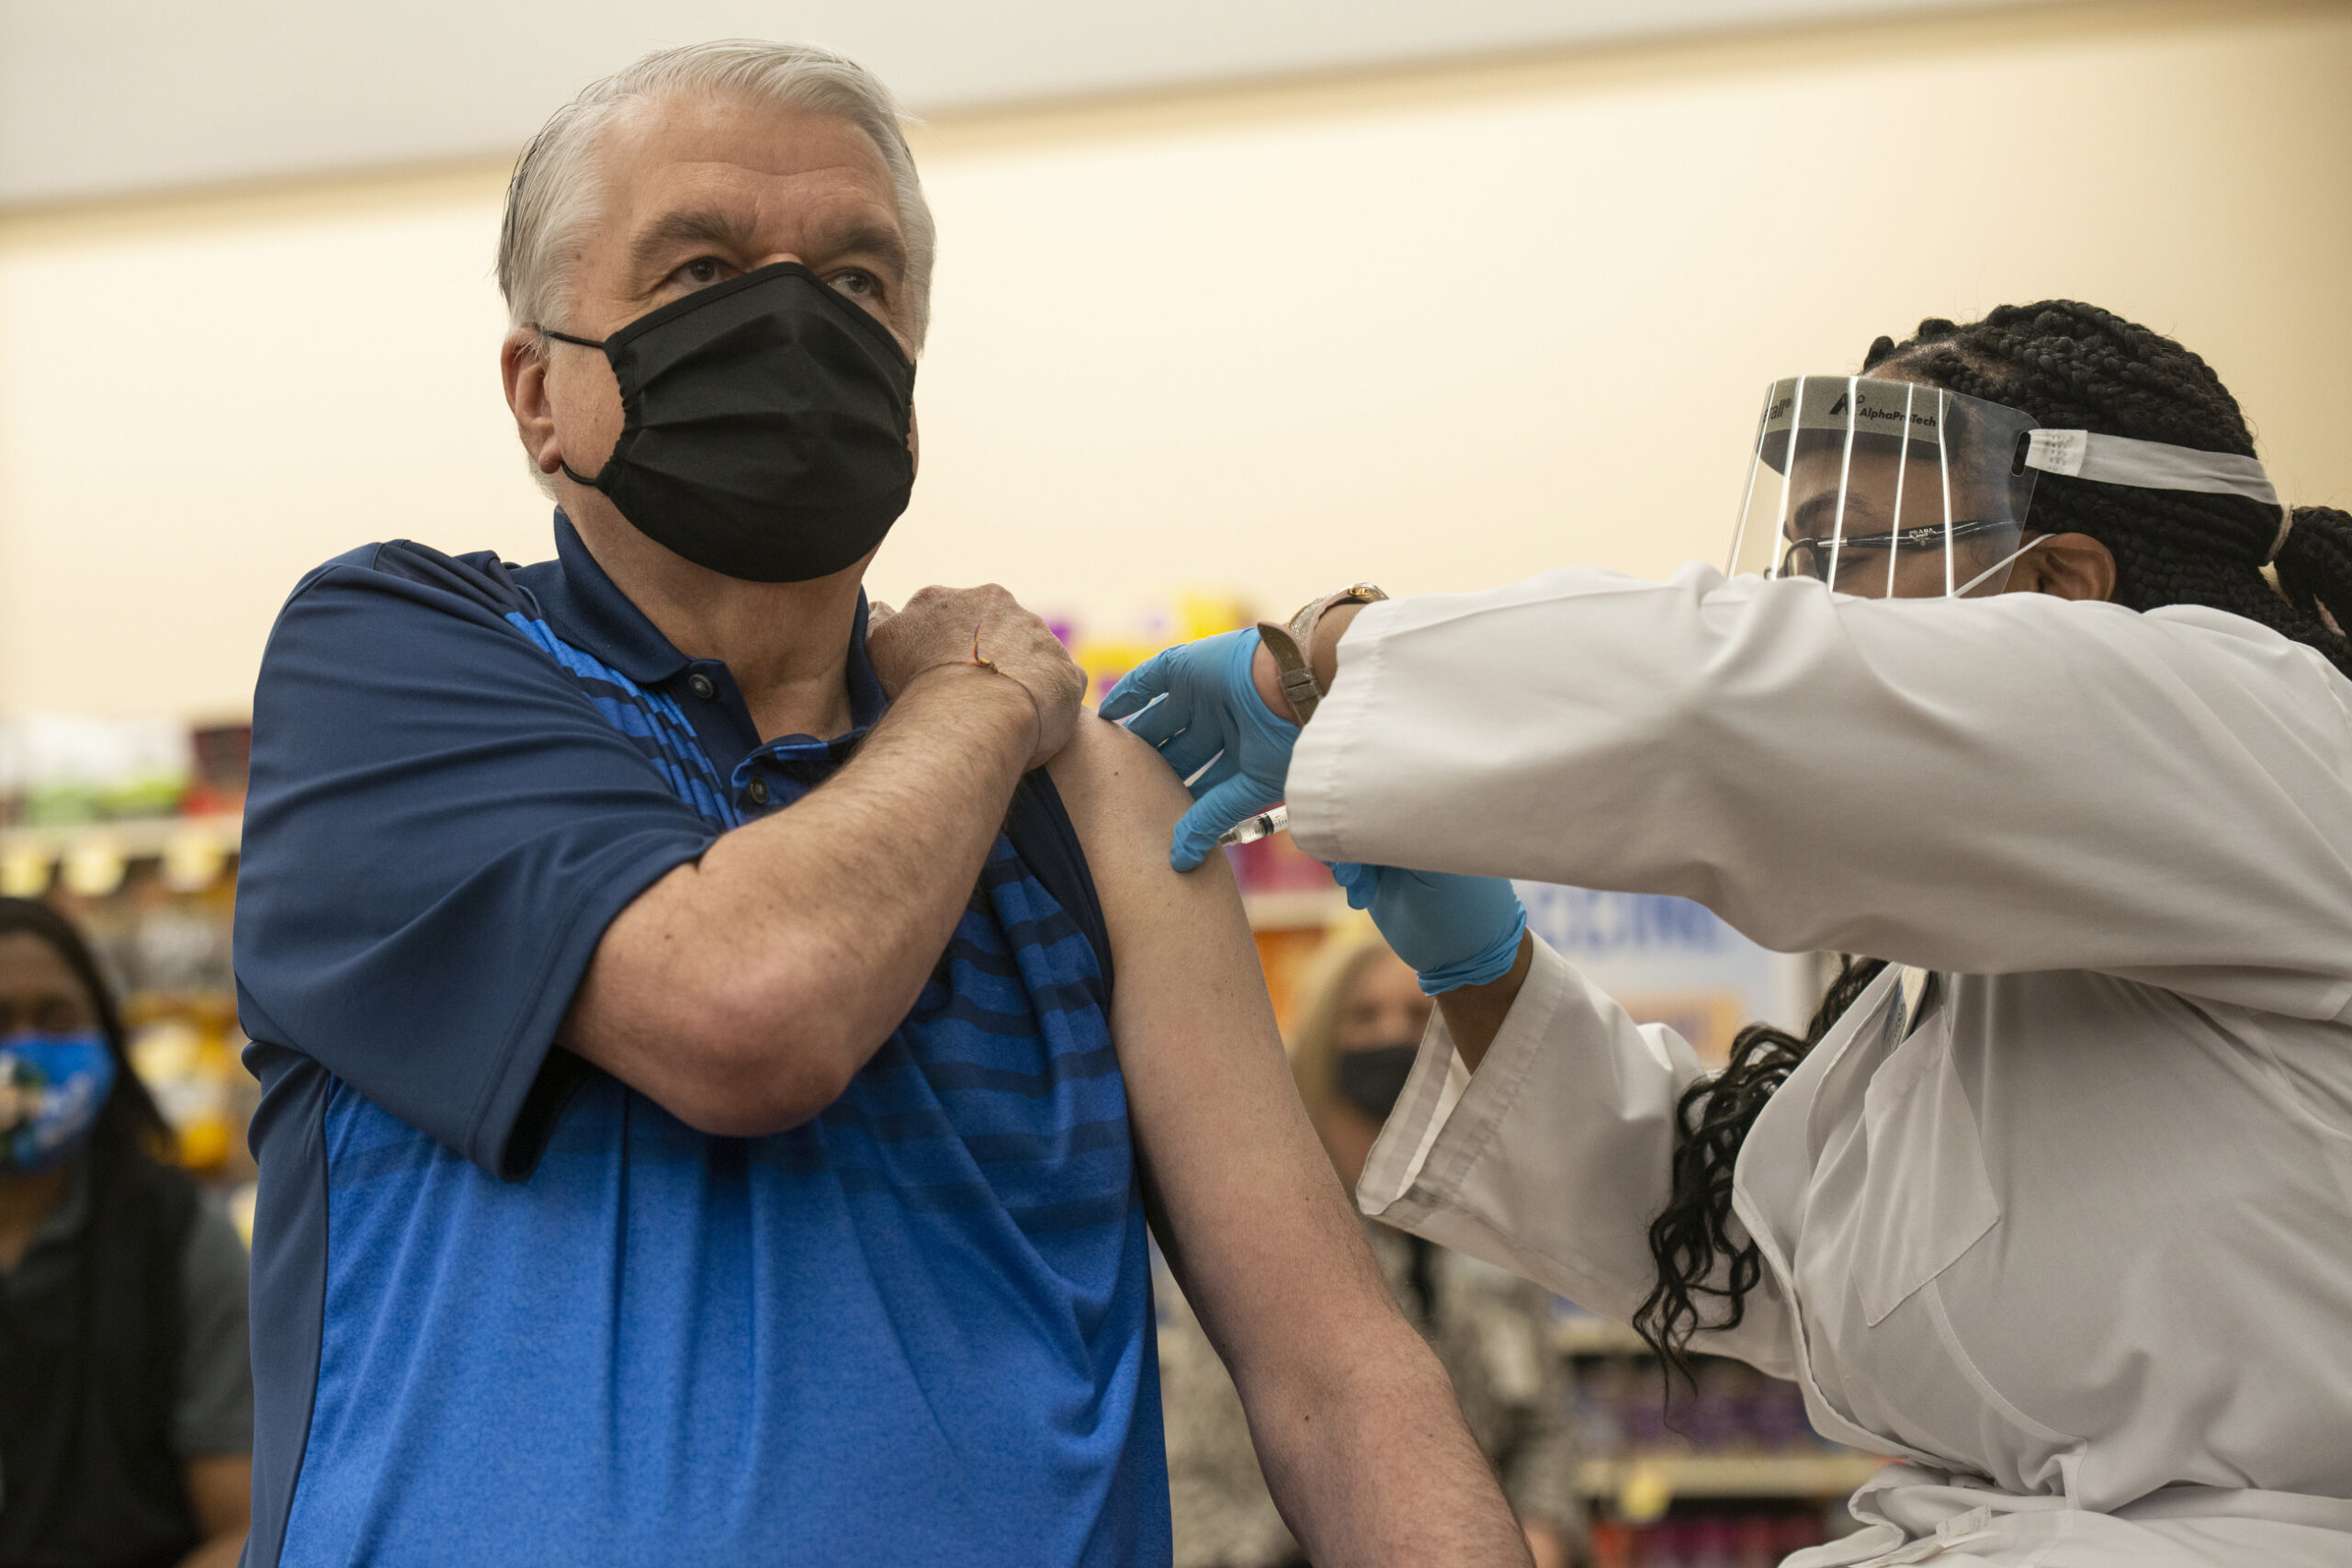 Steve Sisolak receives the COVID-19 vaccine from an Albertsons pharmacist